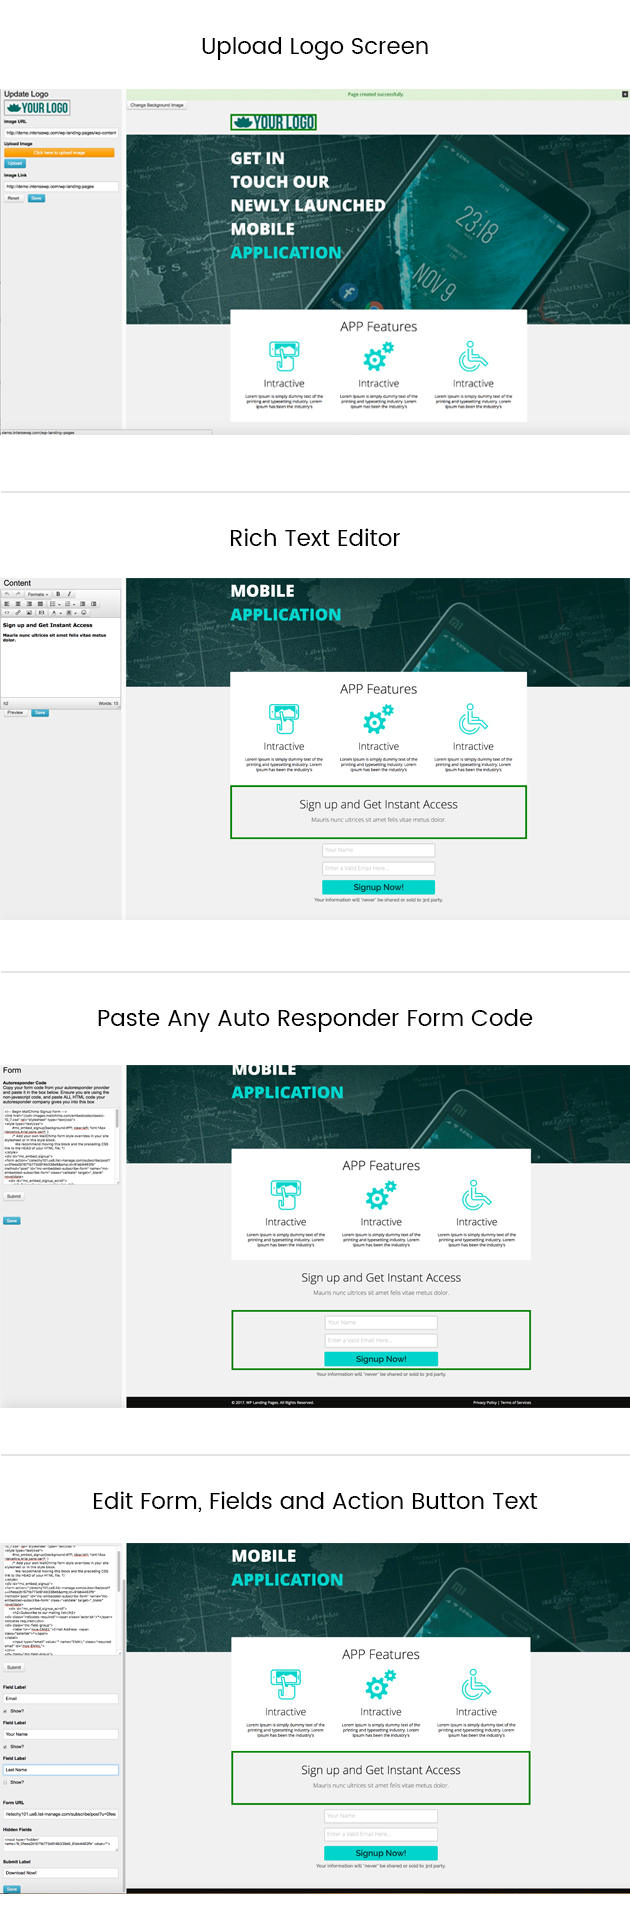 WP Landing Pages Pro - Admin Screens